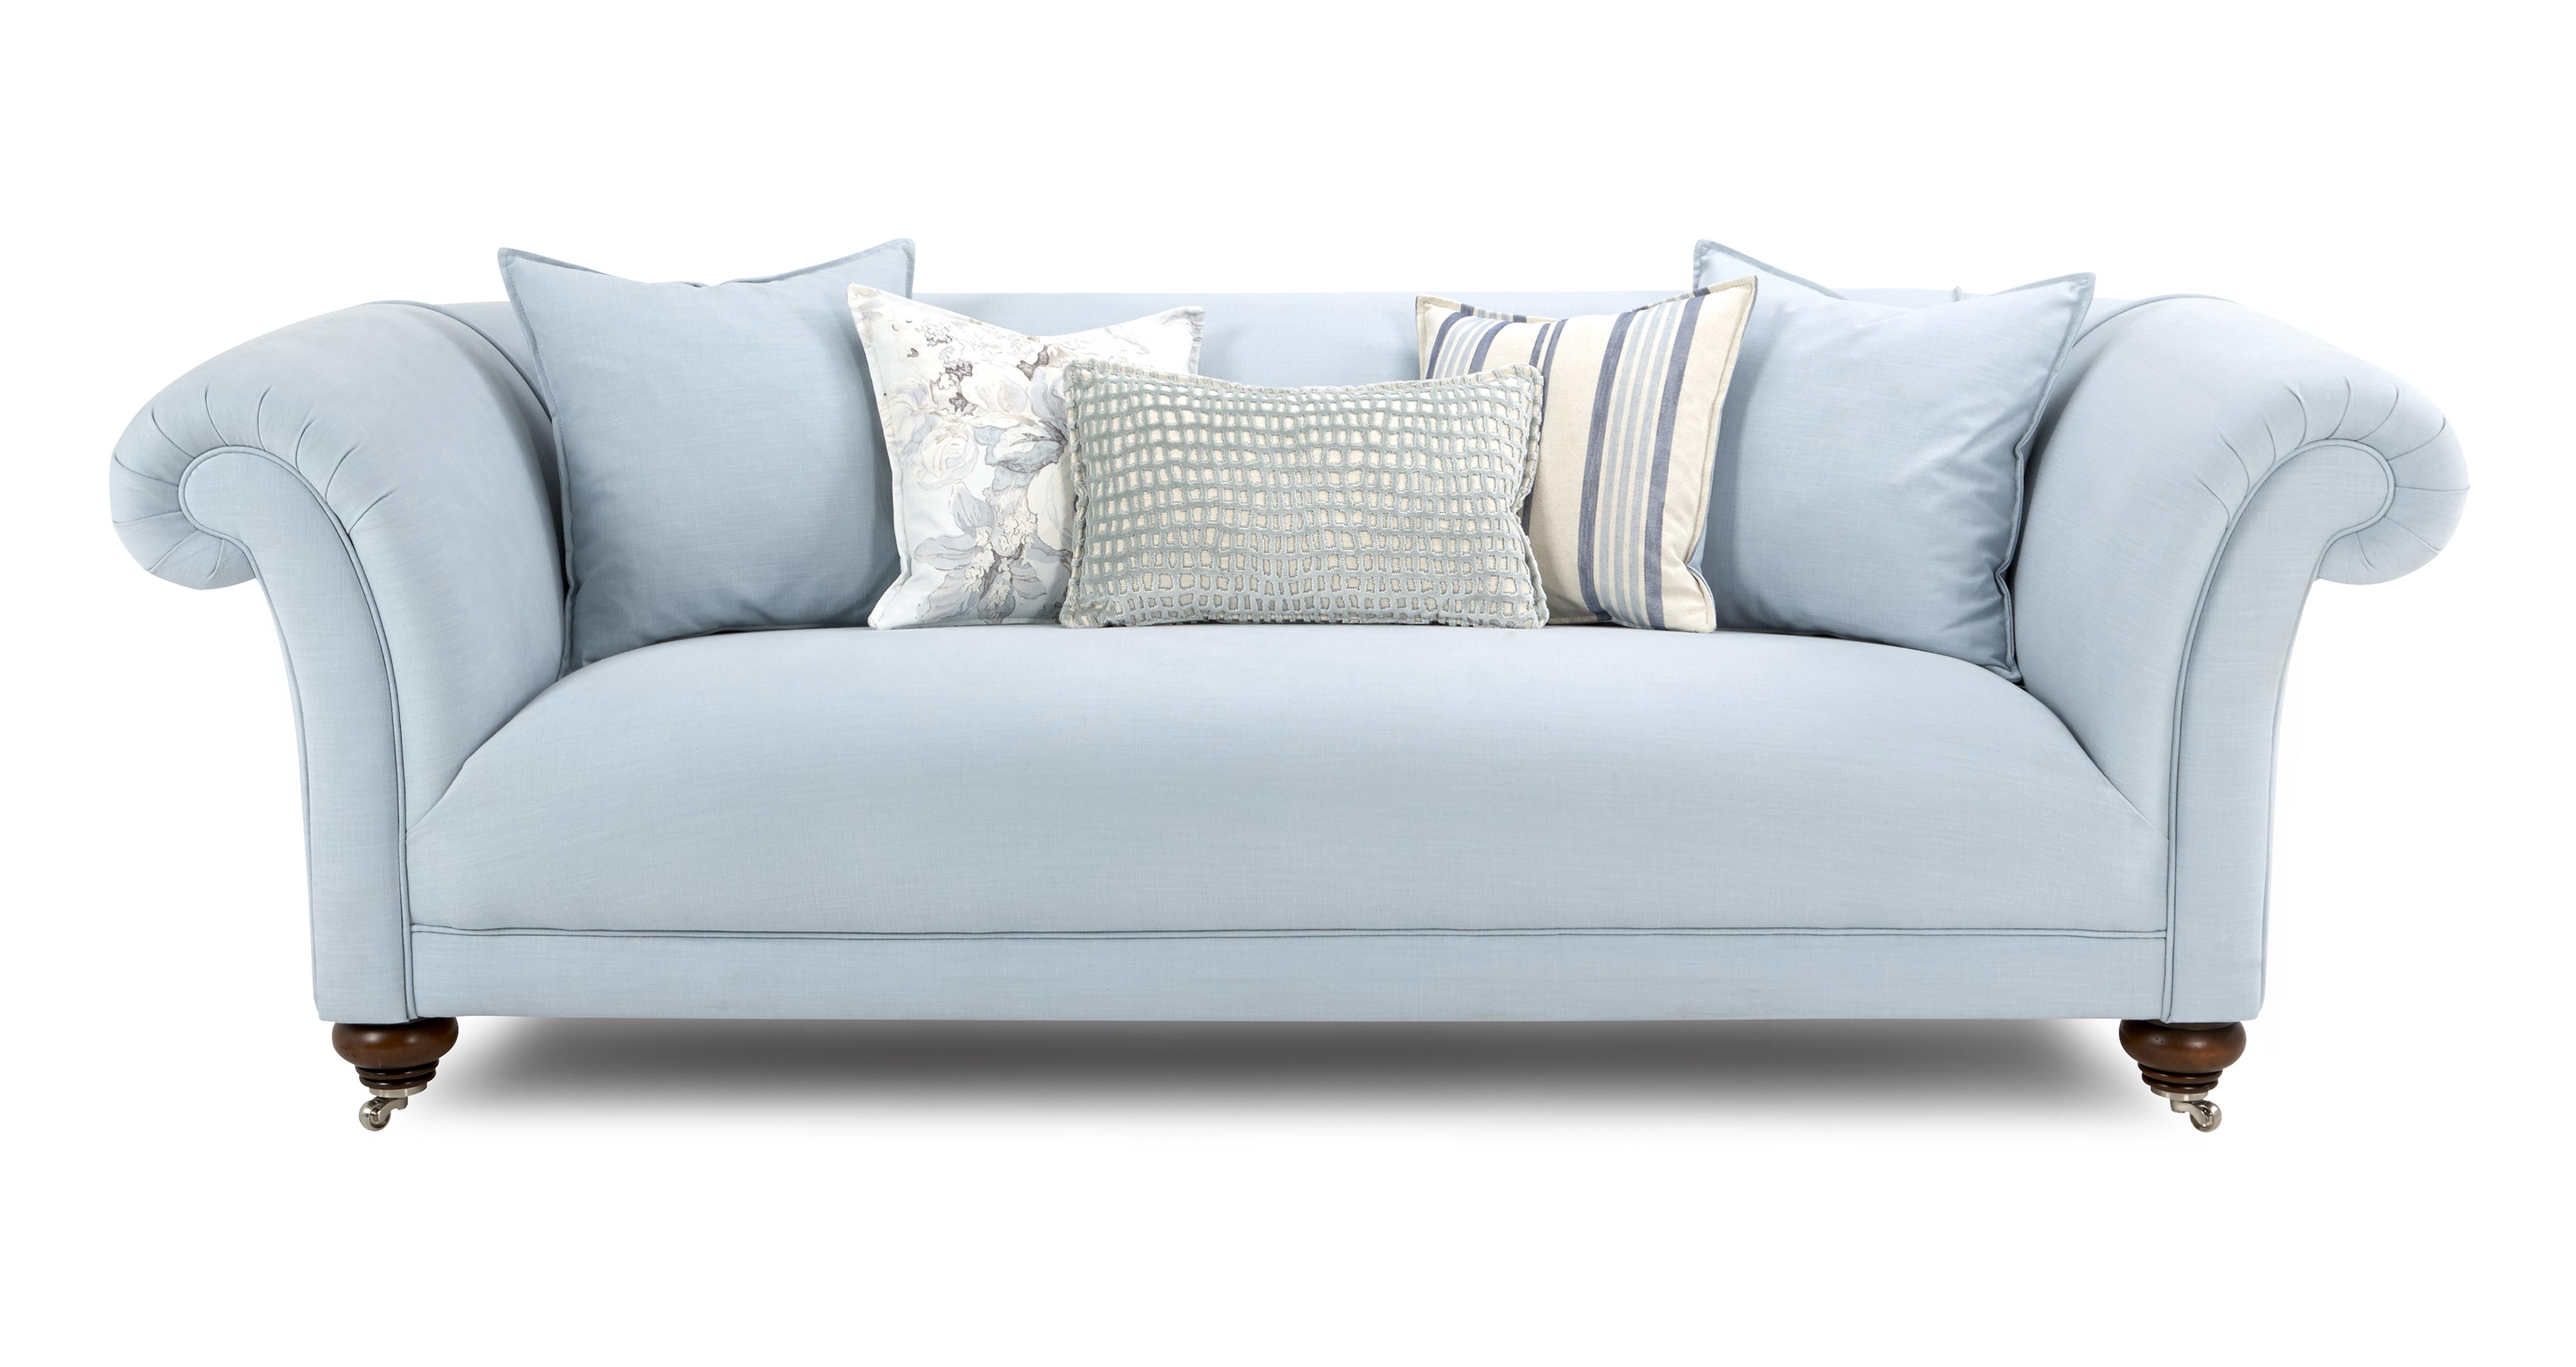 2 seater sofa beds dfs french connection zinc review blue | brokeasshome.com